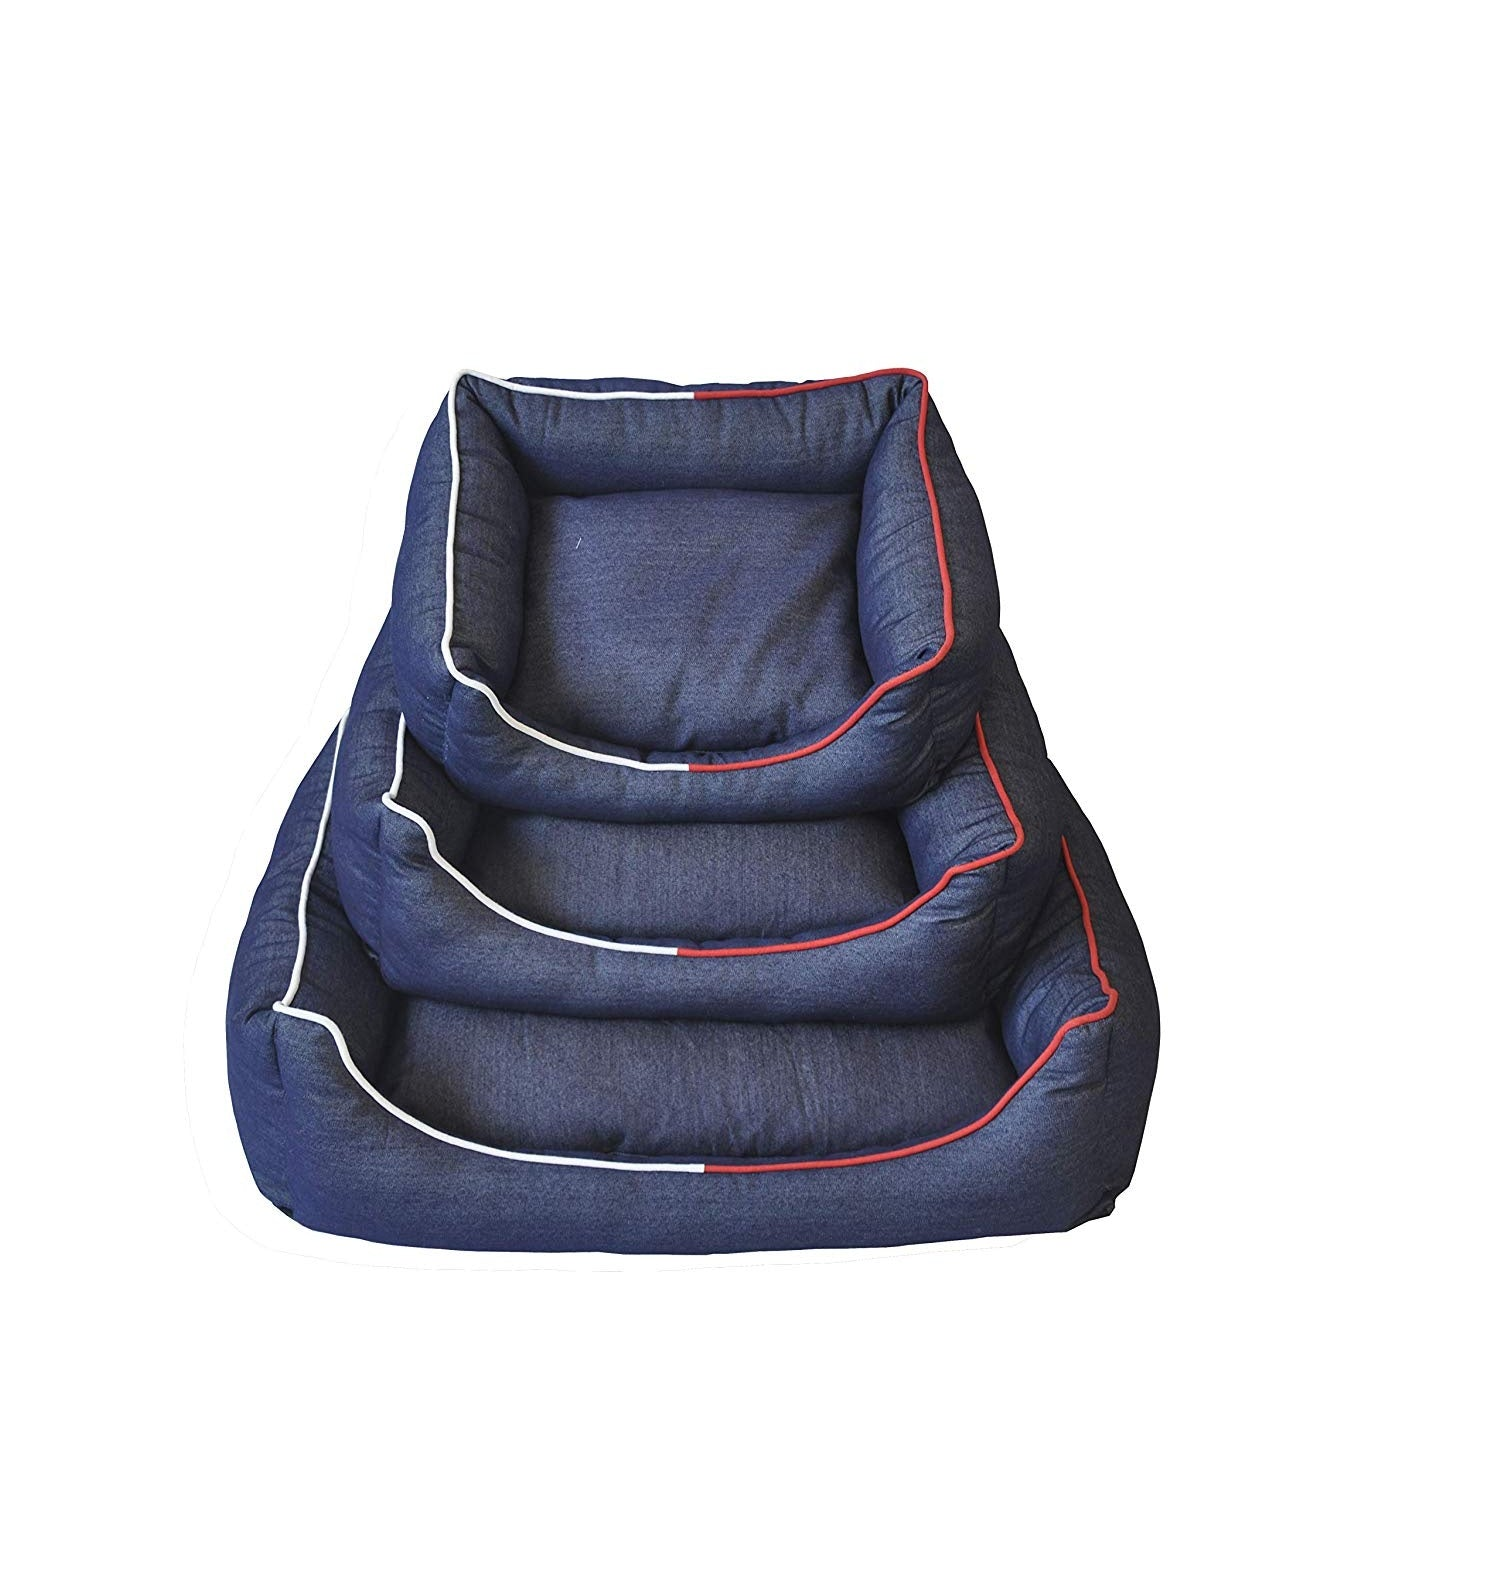 Goofy Tails Washable Denim Sofa Bed for Dogs & Cats - pet-club-india